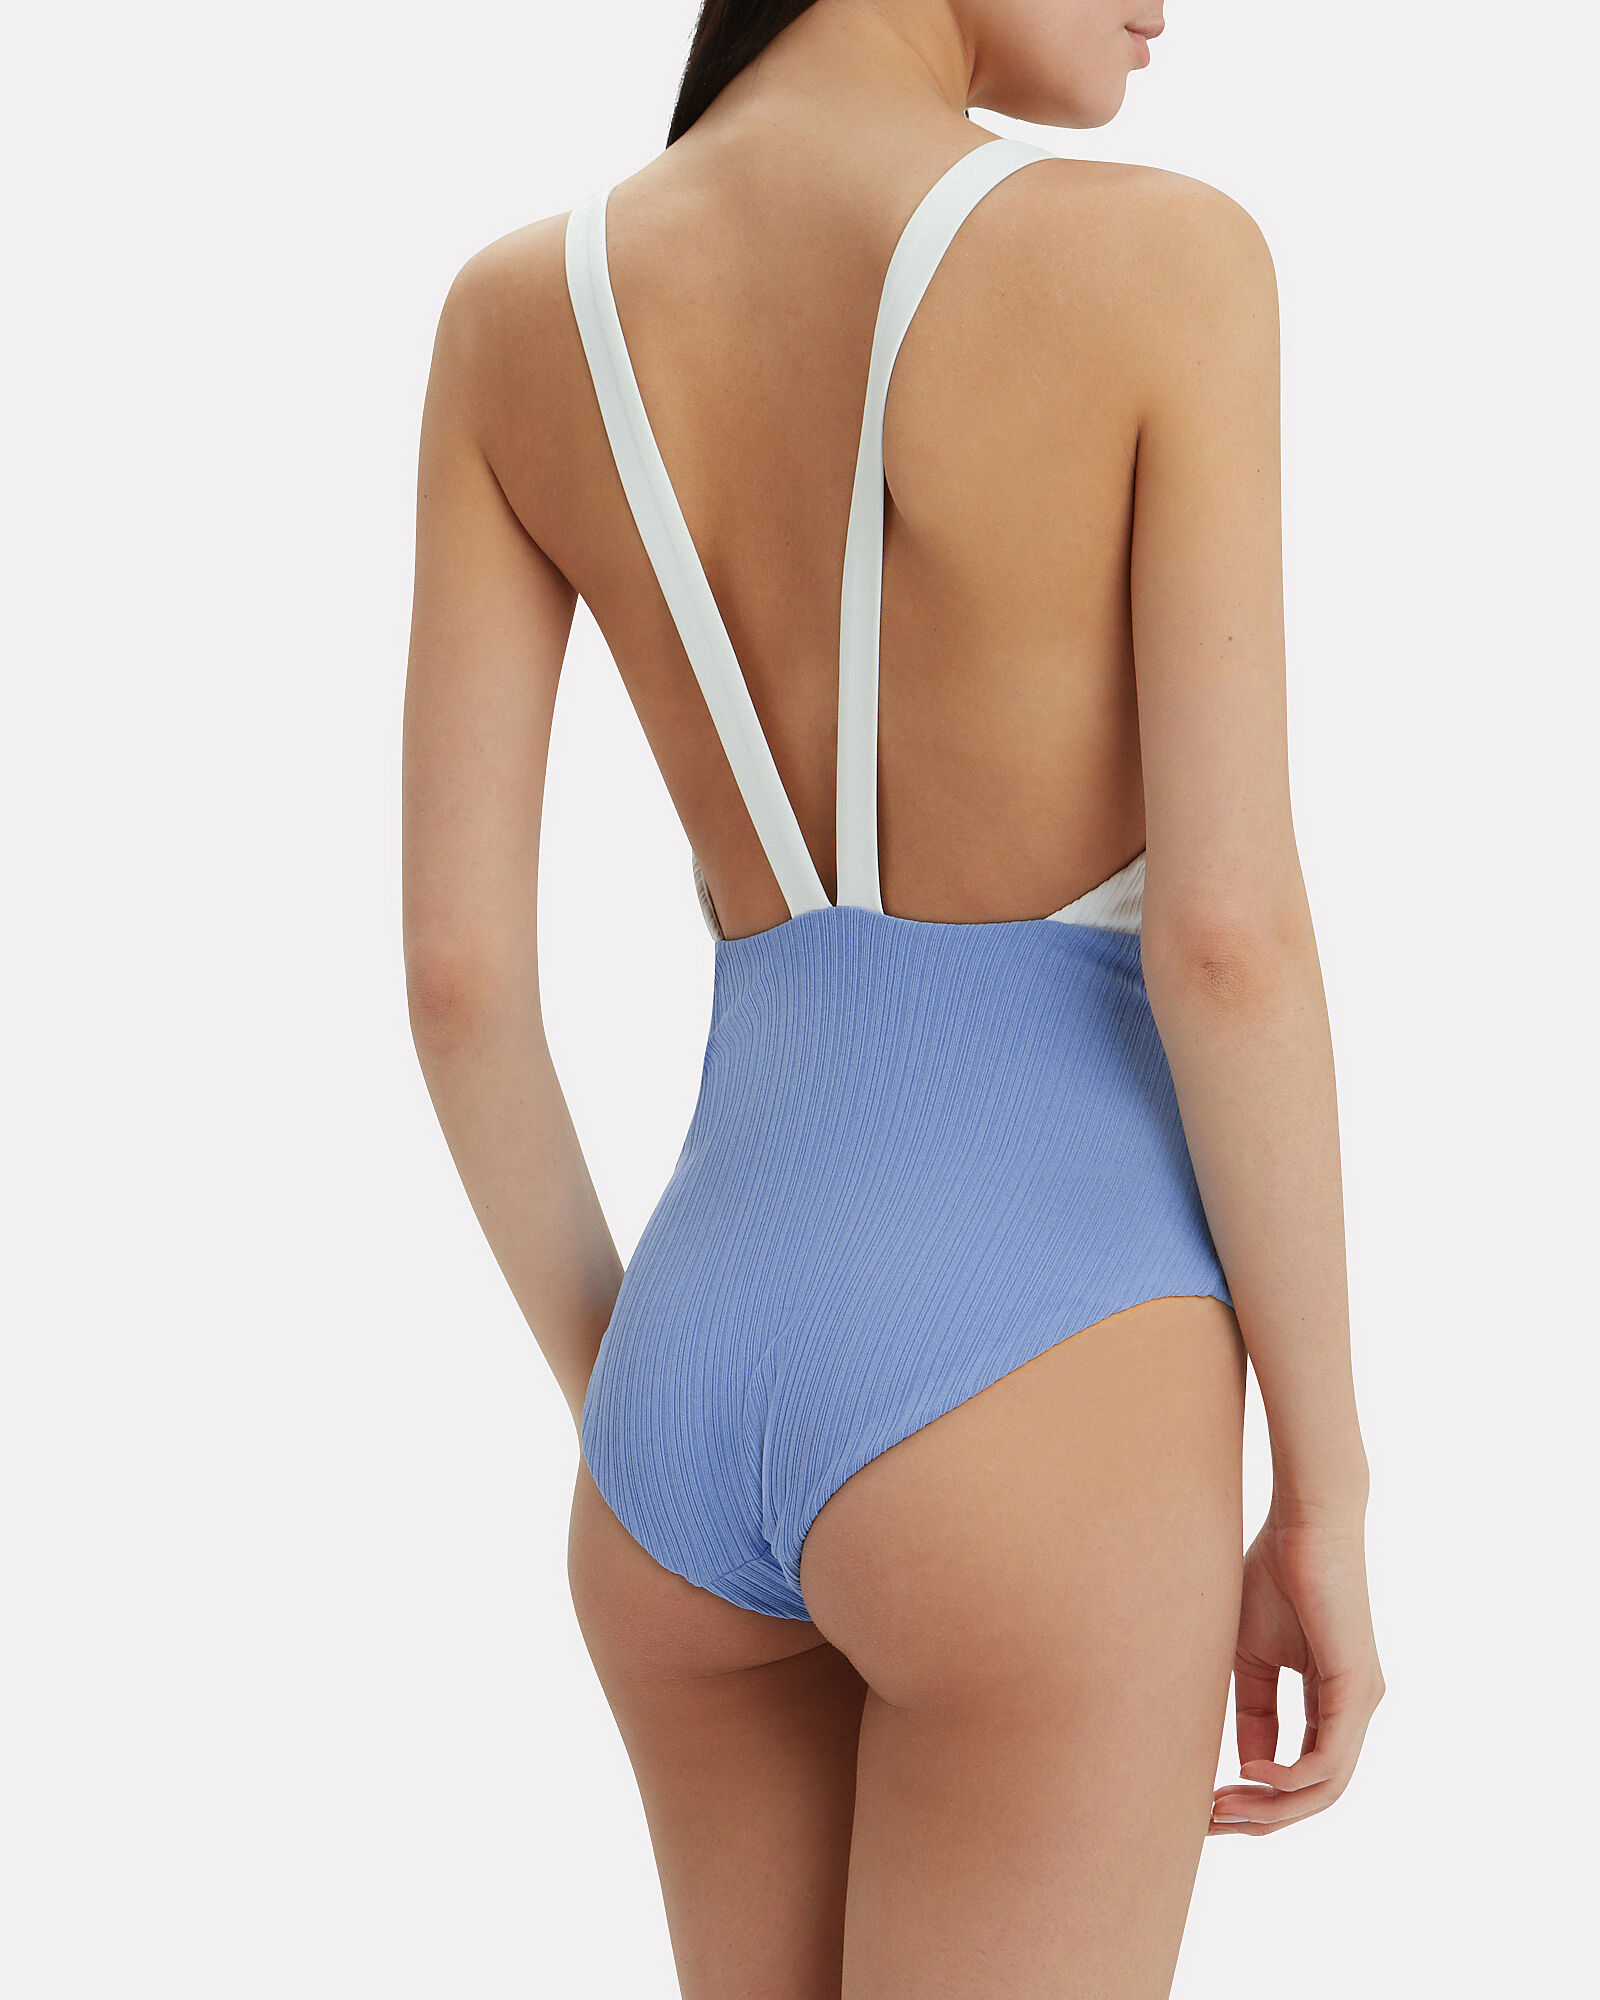 Iona Lace-Up One Piece Swimsuit, BLUE-MED, hi-res